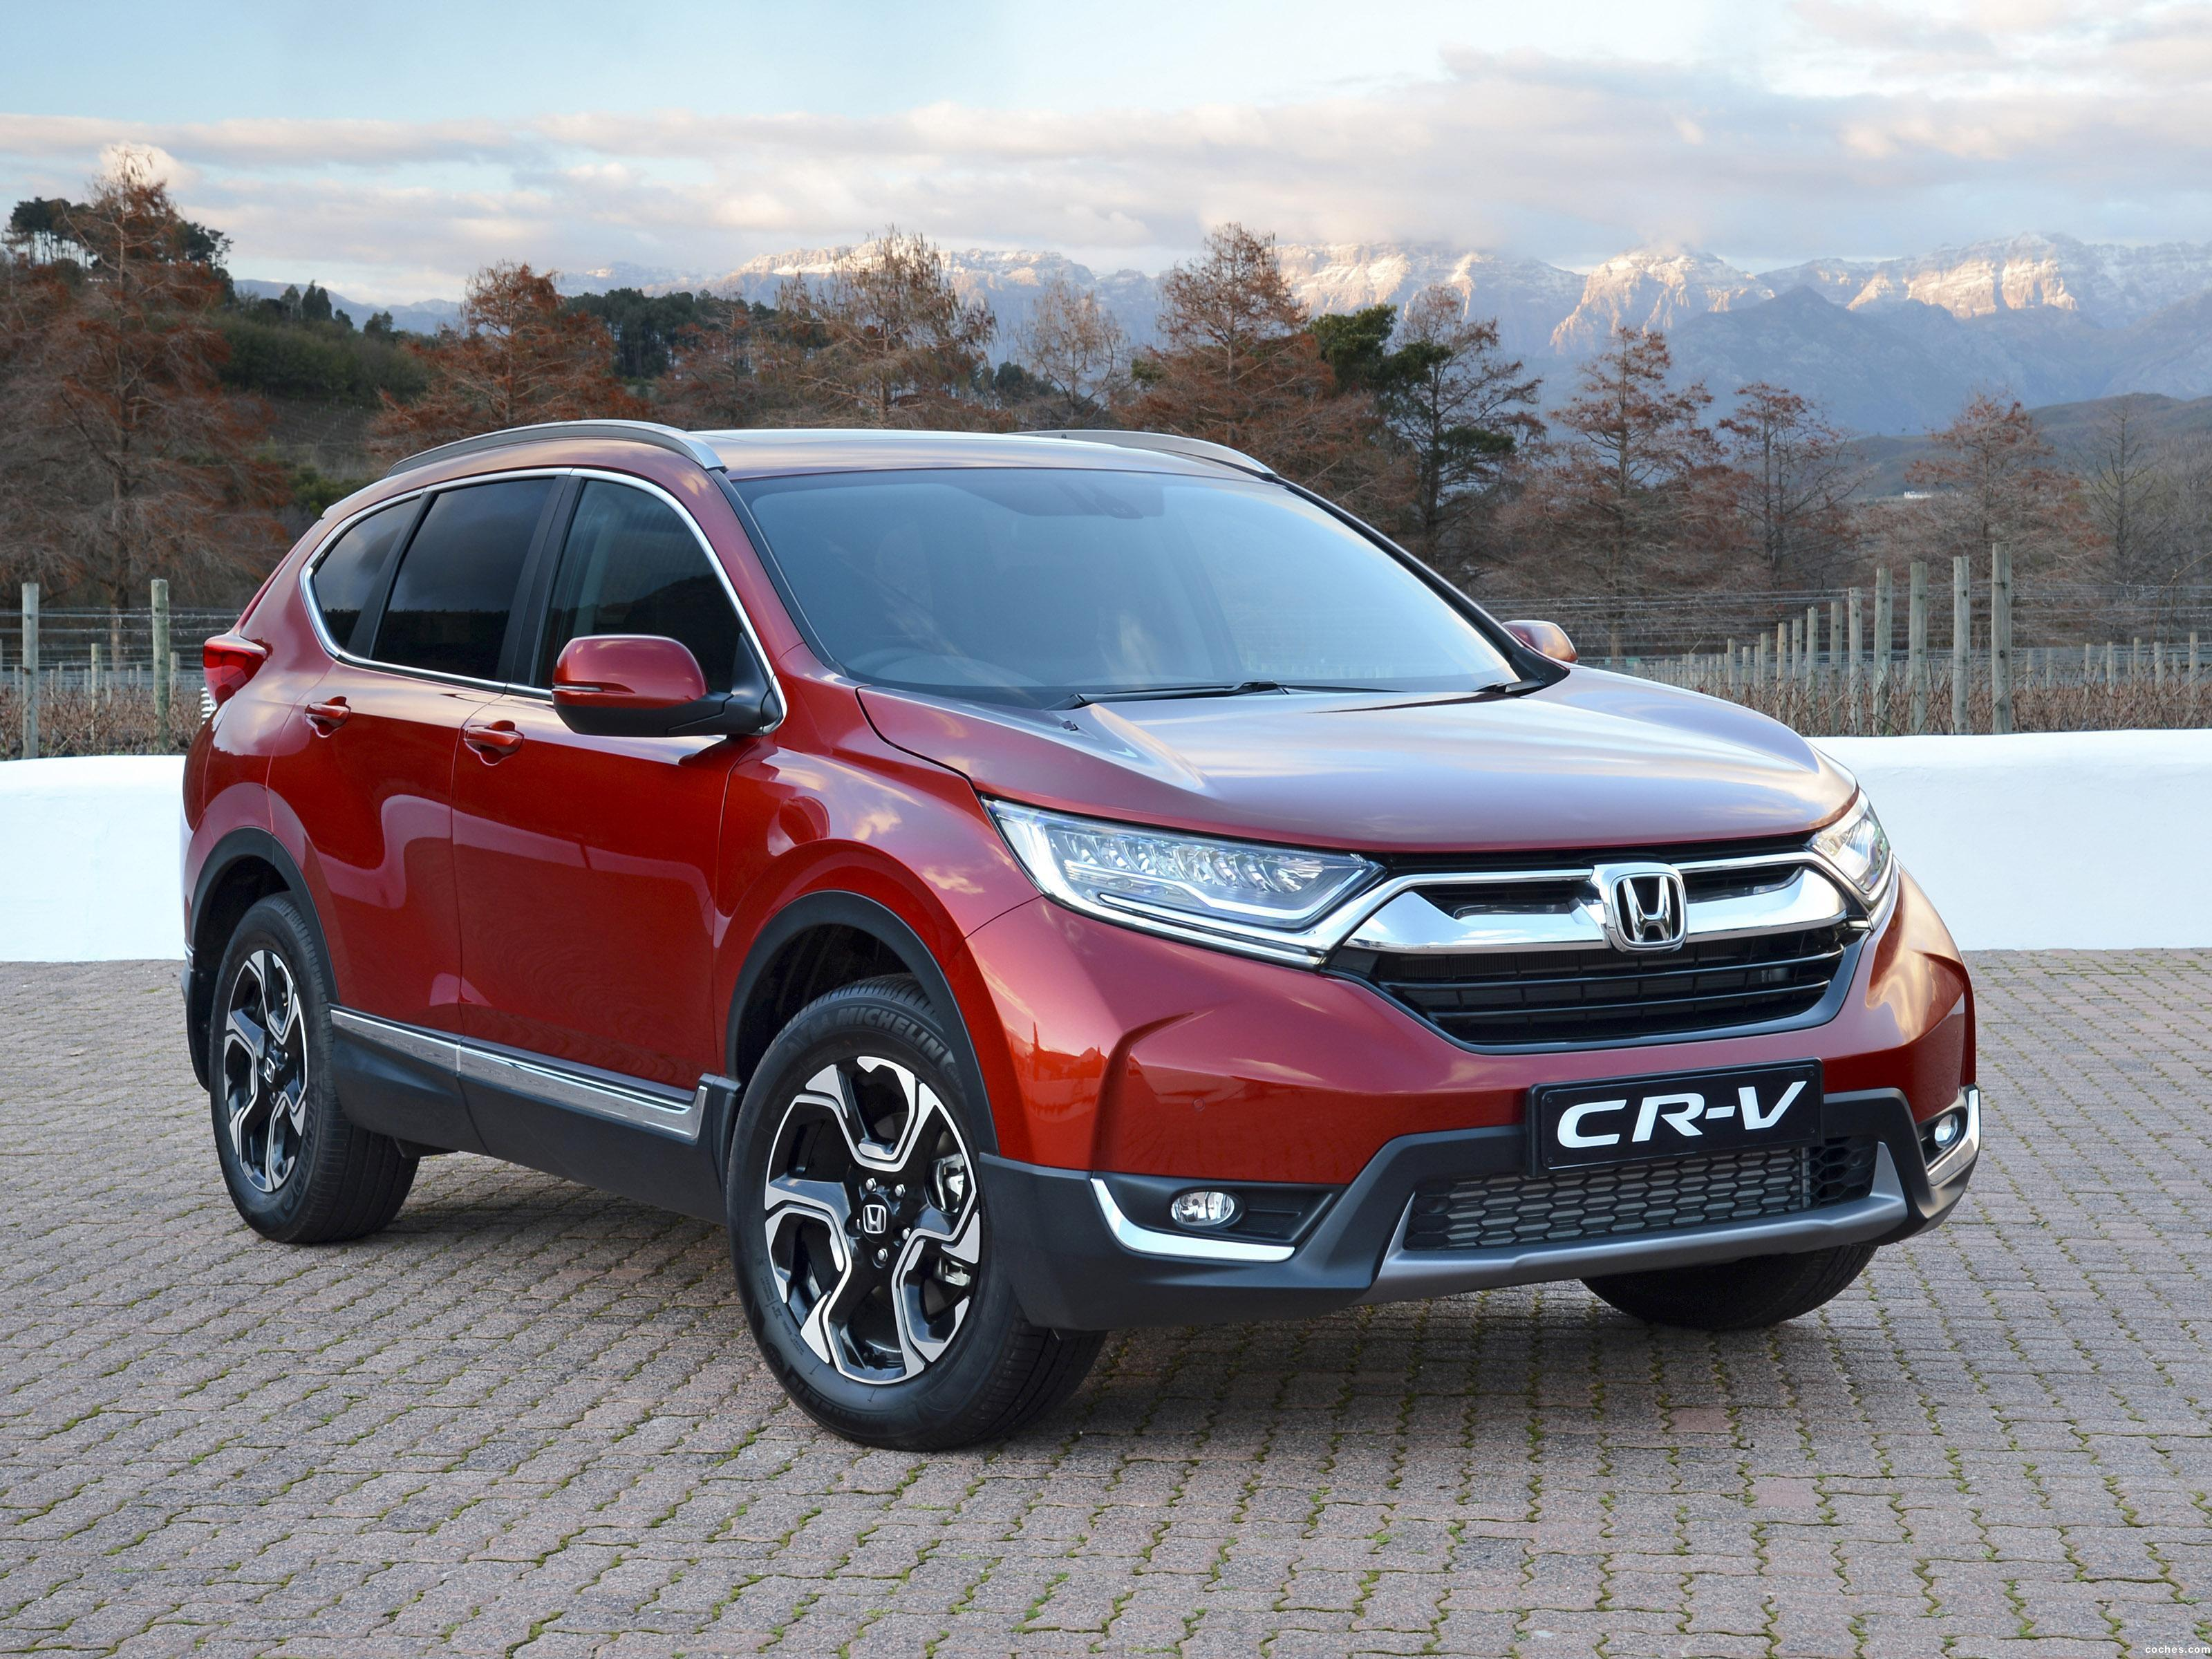 honda_cr-v-south-africa-2017_r19.jpg